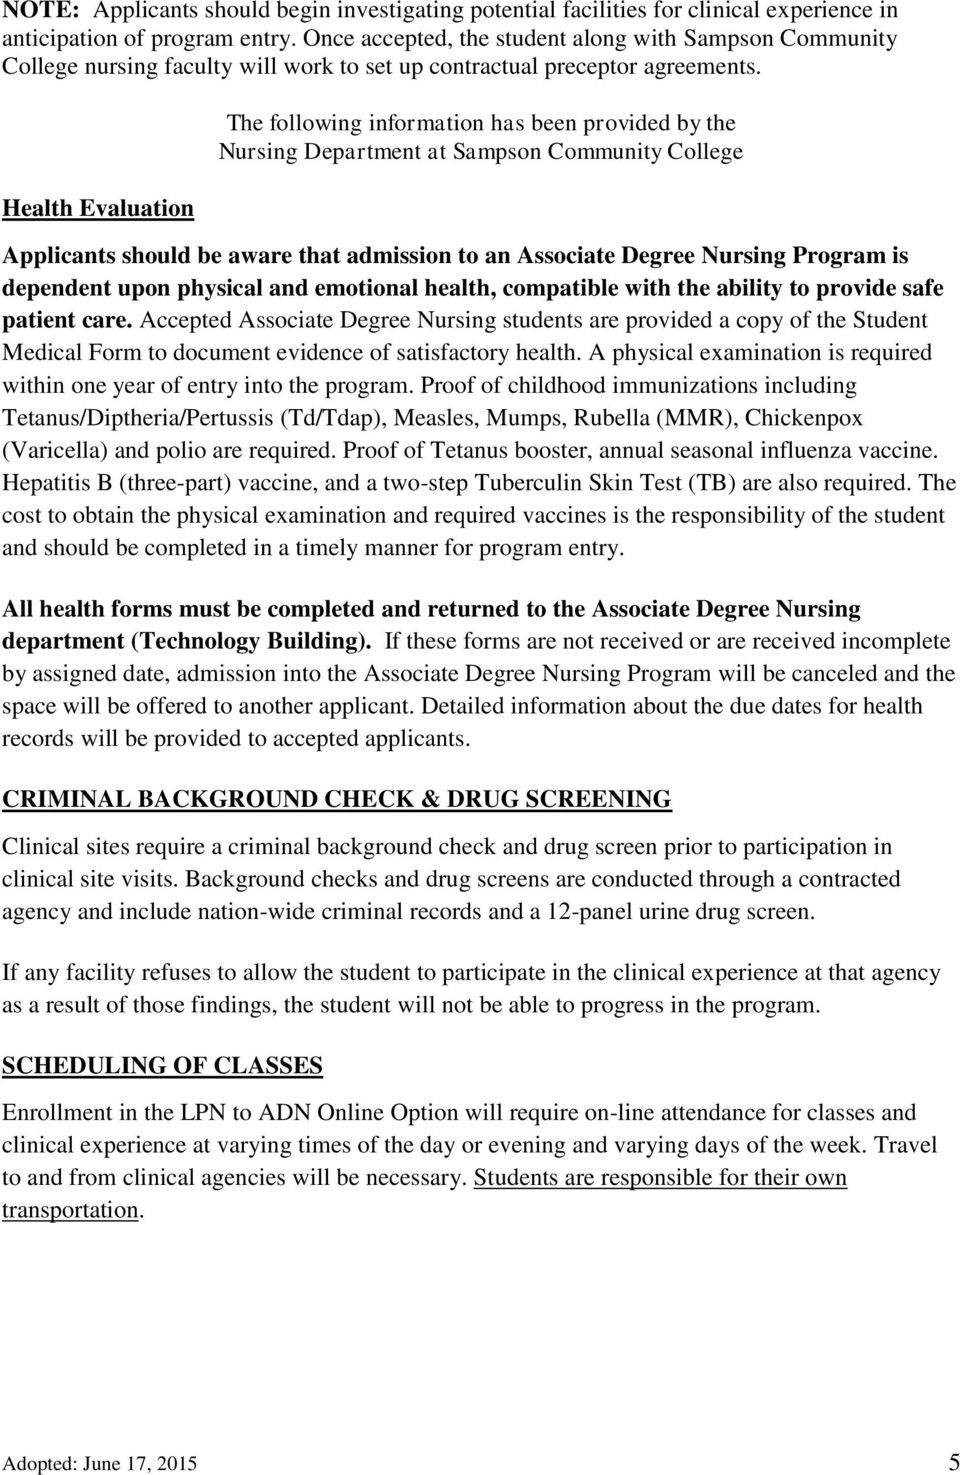 Health Evaluation The following information has been provided by the Nursing Department at Applicants should be aware that admission to an Associate Degree Nursing Program is dependent upon physical